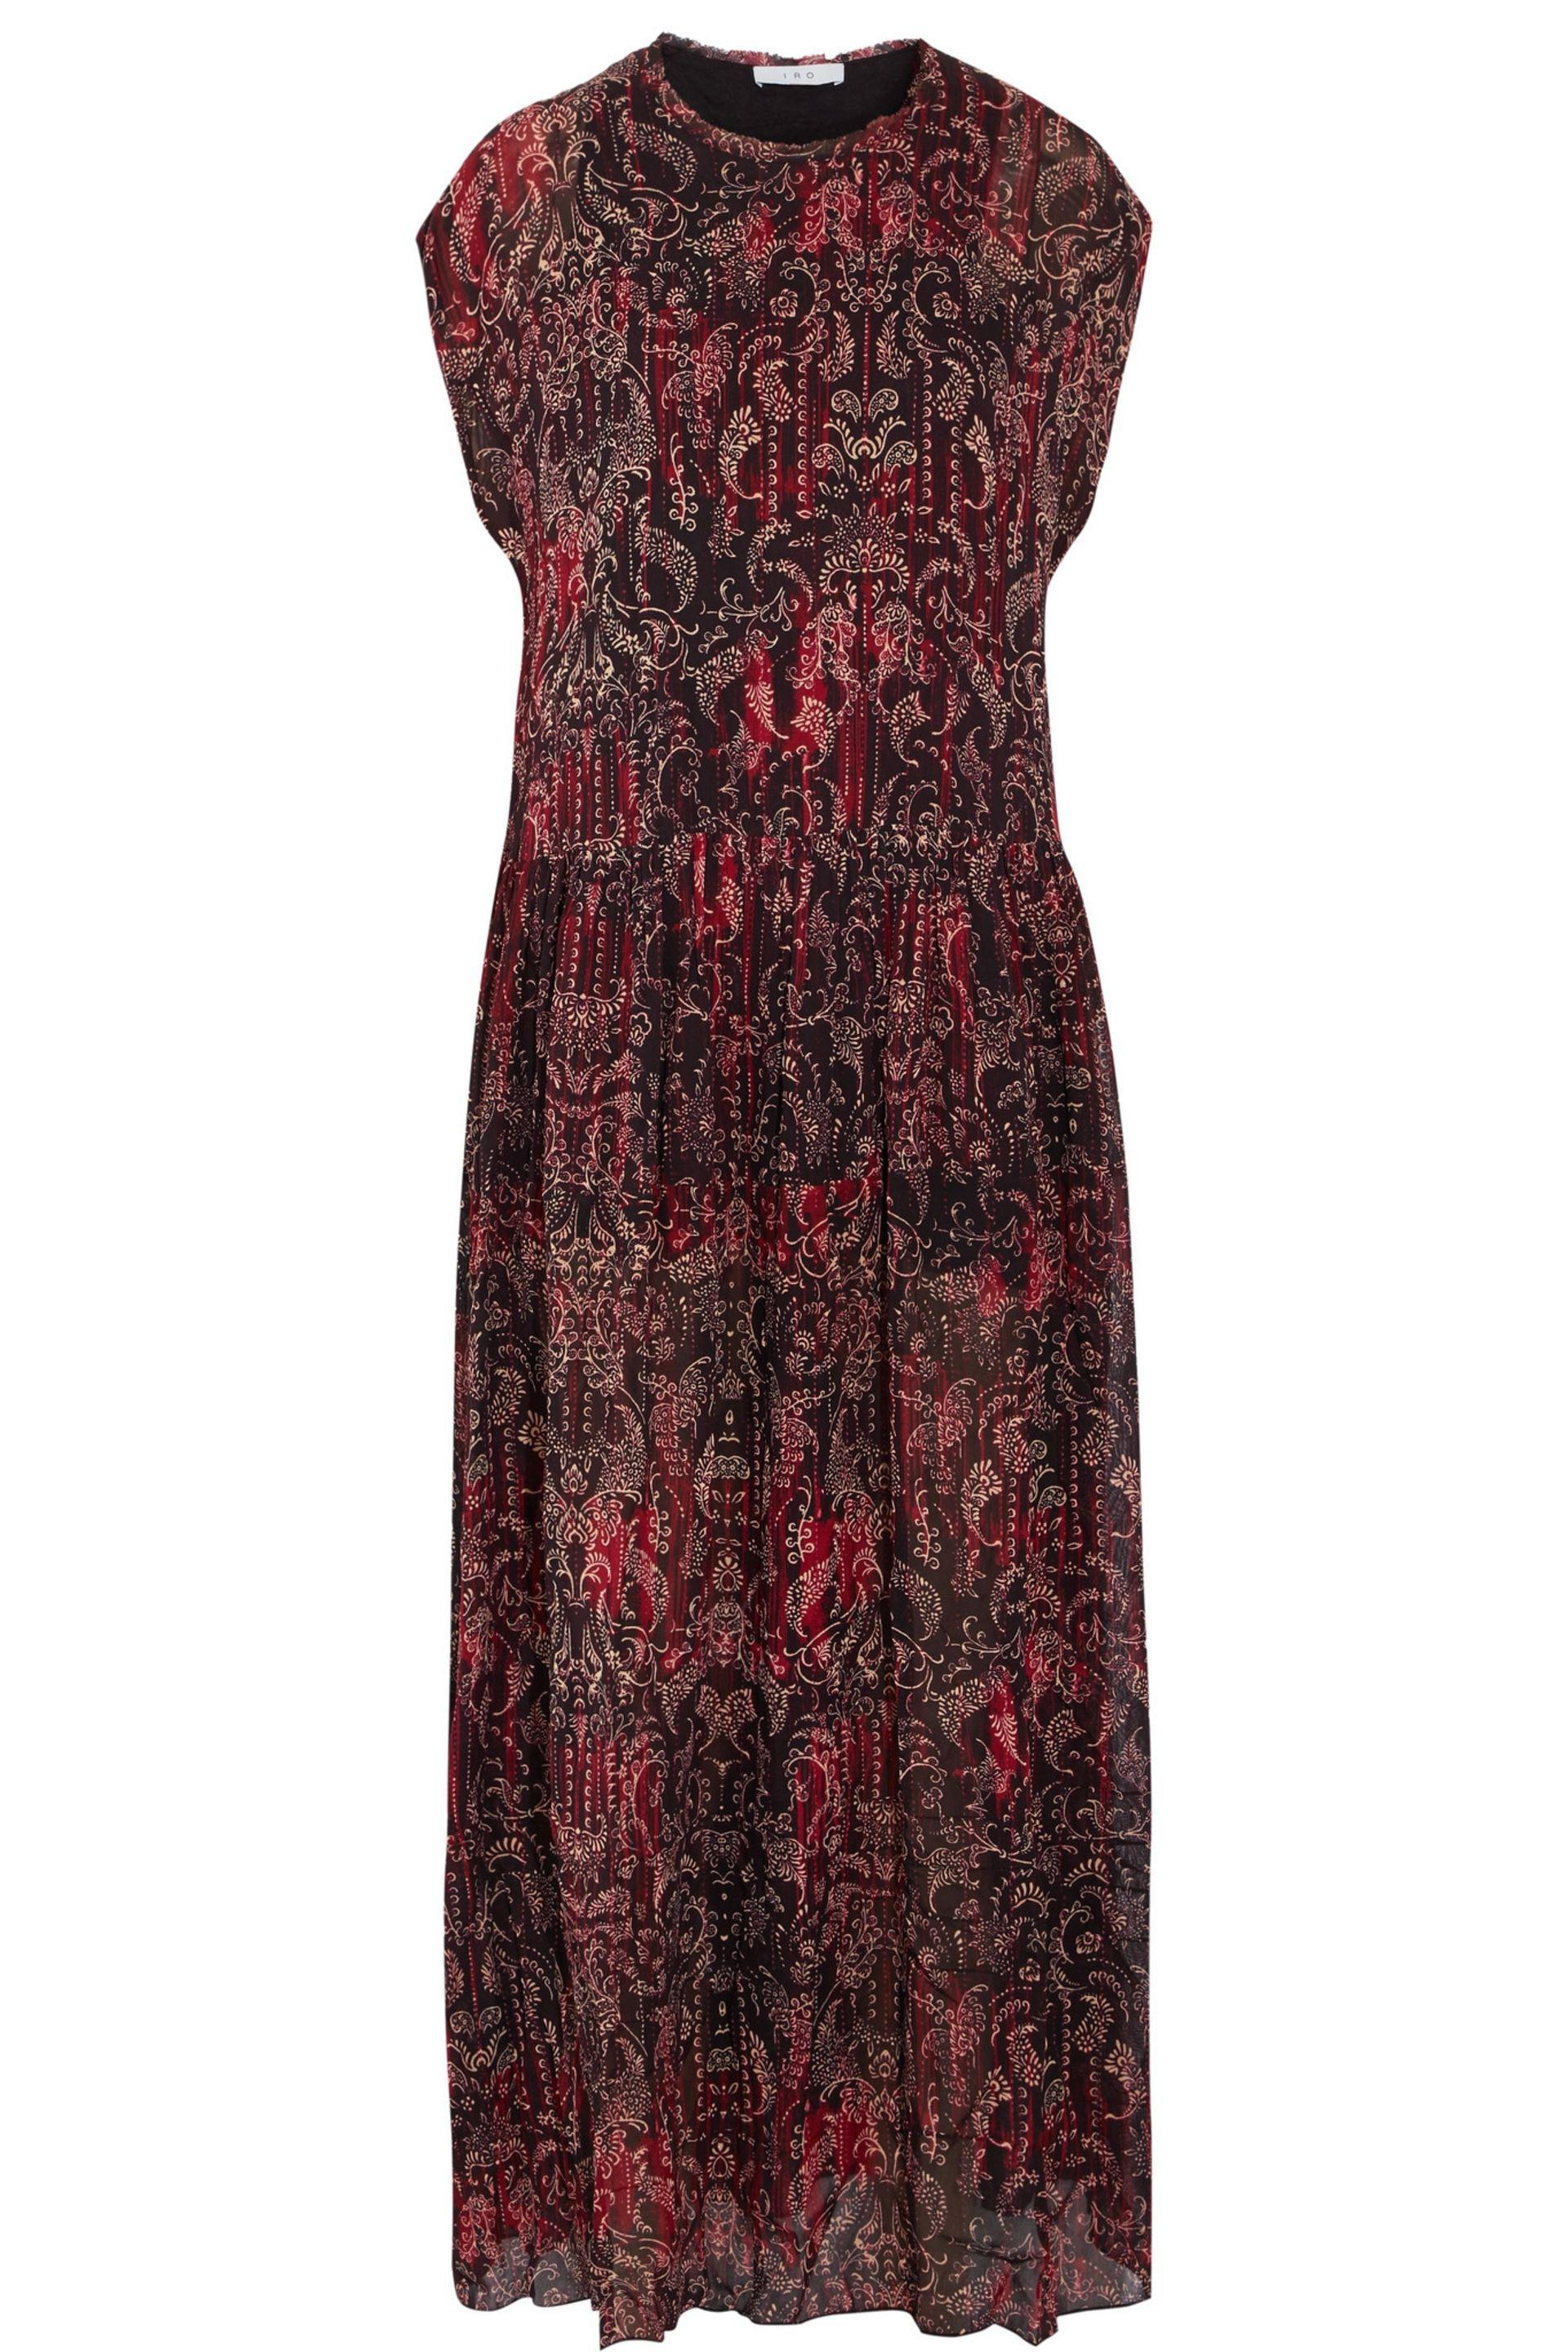 Iro Woman Printed Faille Maxi Dress Crimson Size 36 Iro New Styles Latest Pnvlypn4FB